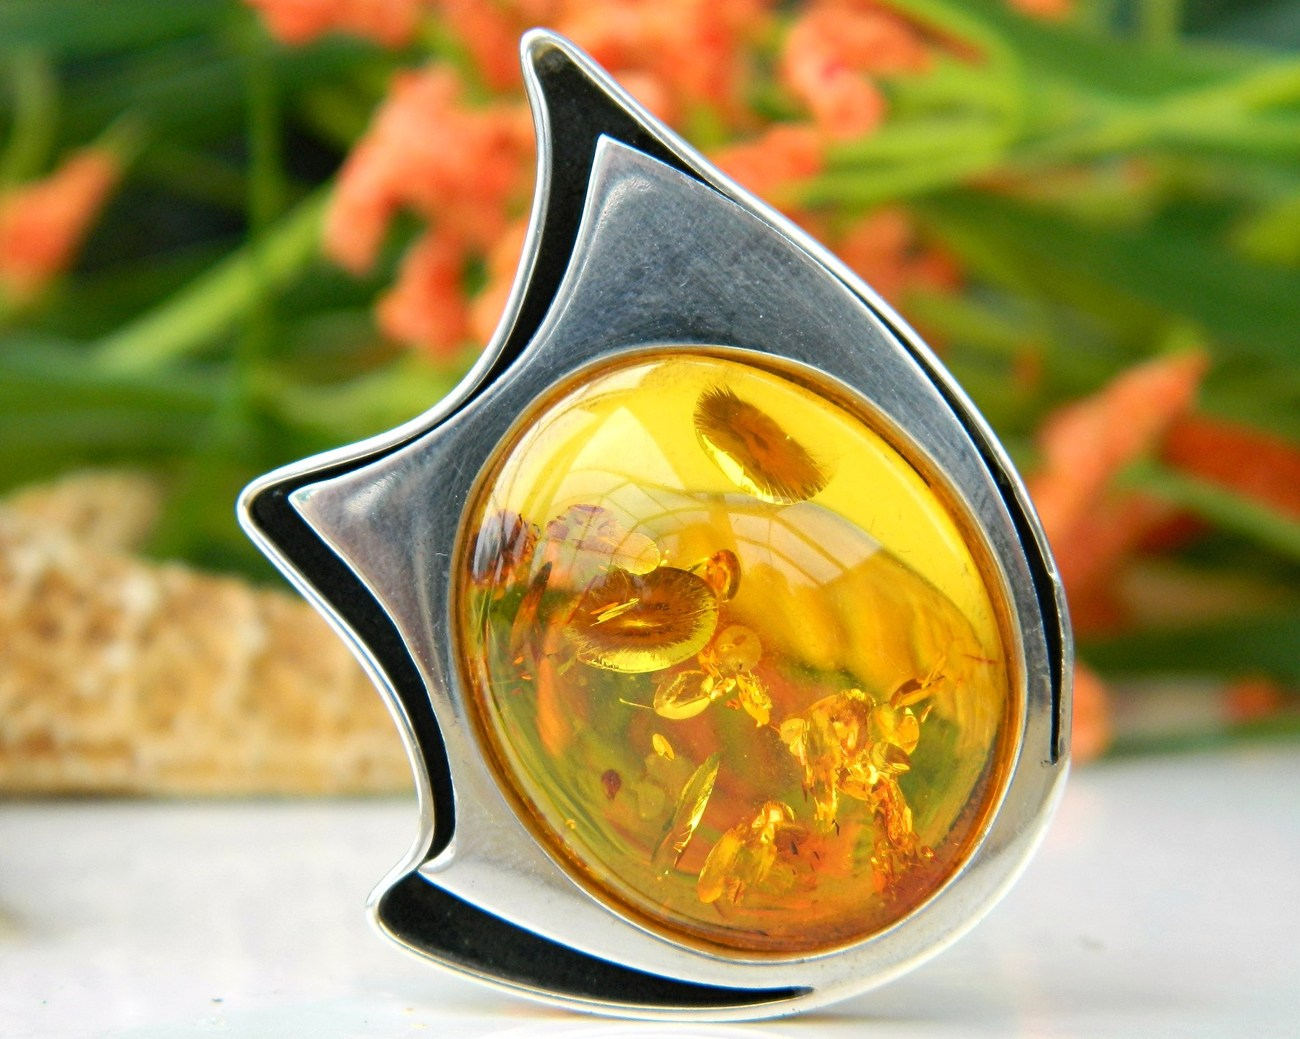 Polish_amber_sterling_silver_brooch_pin_modernist_hallmarked